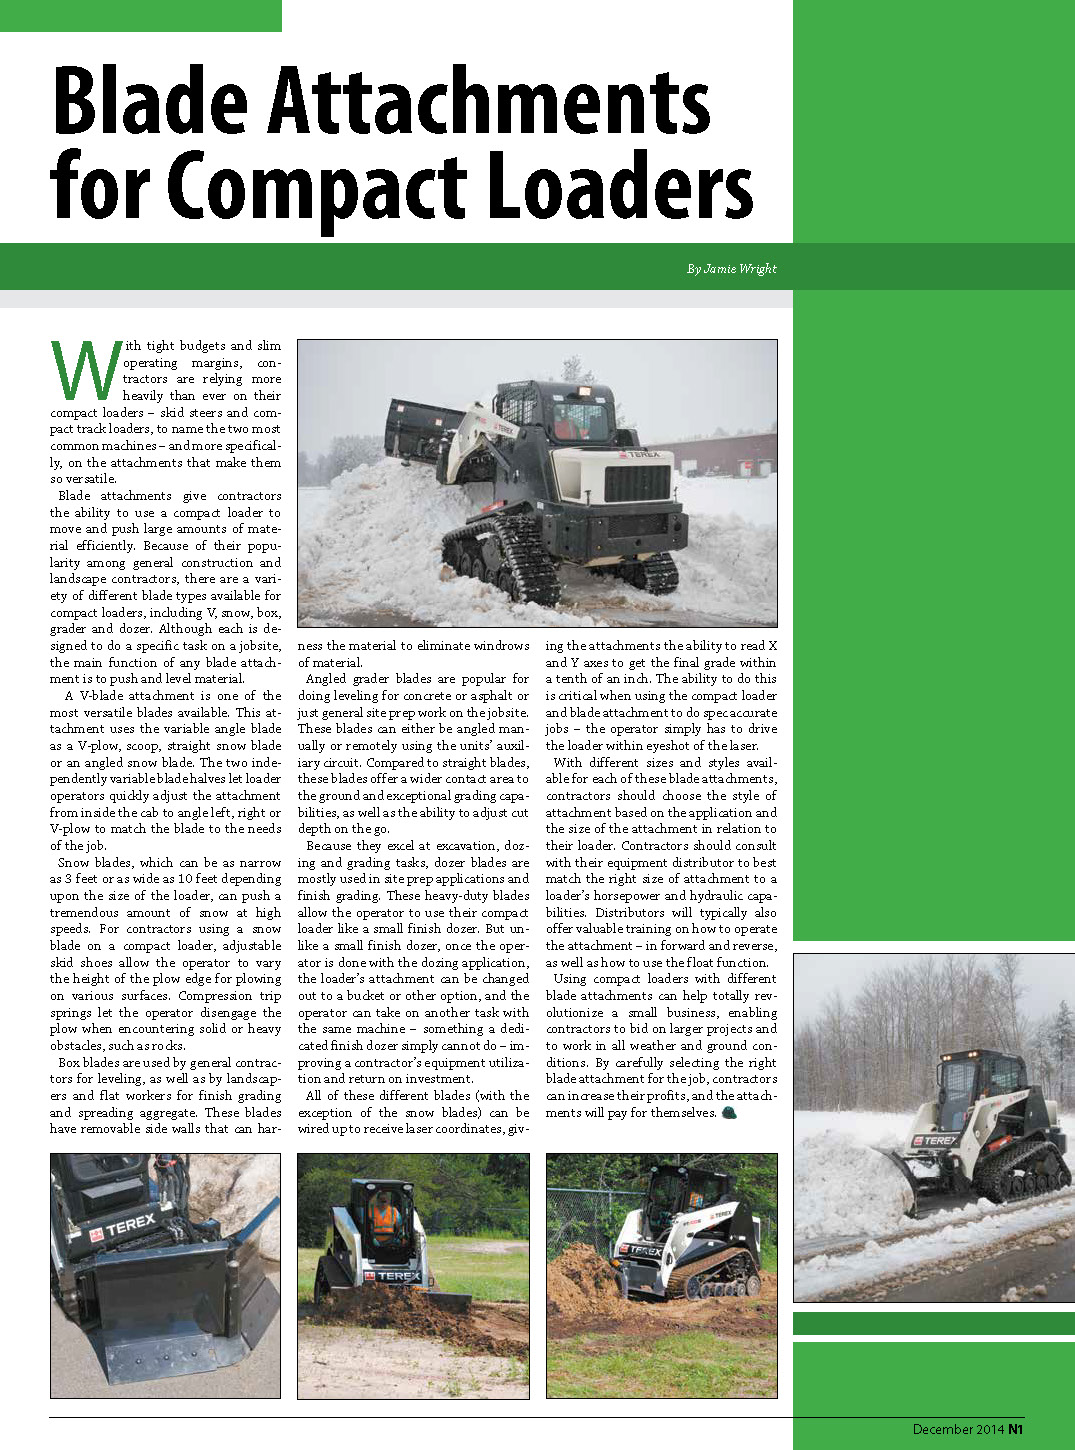 Blade Attachments for Compact Loaders